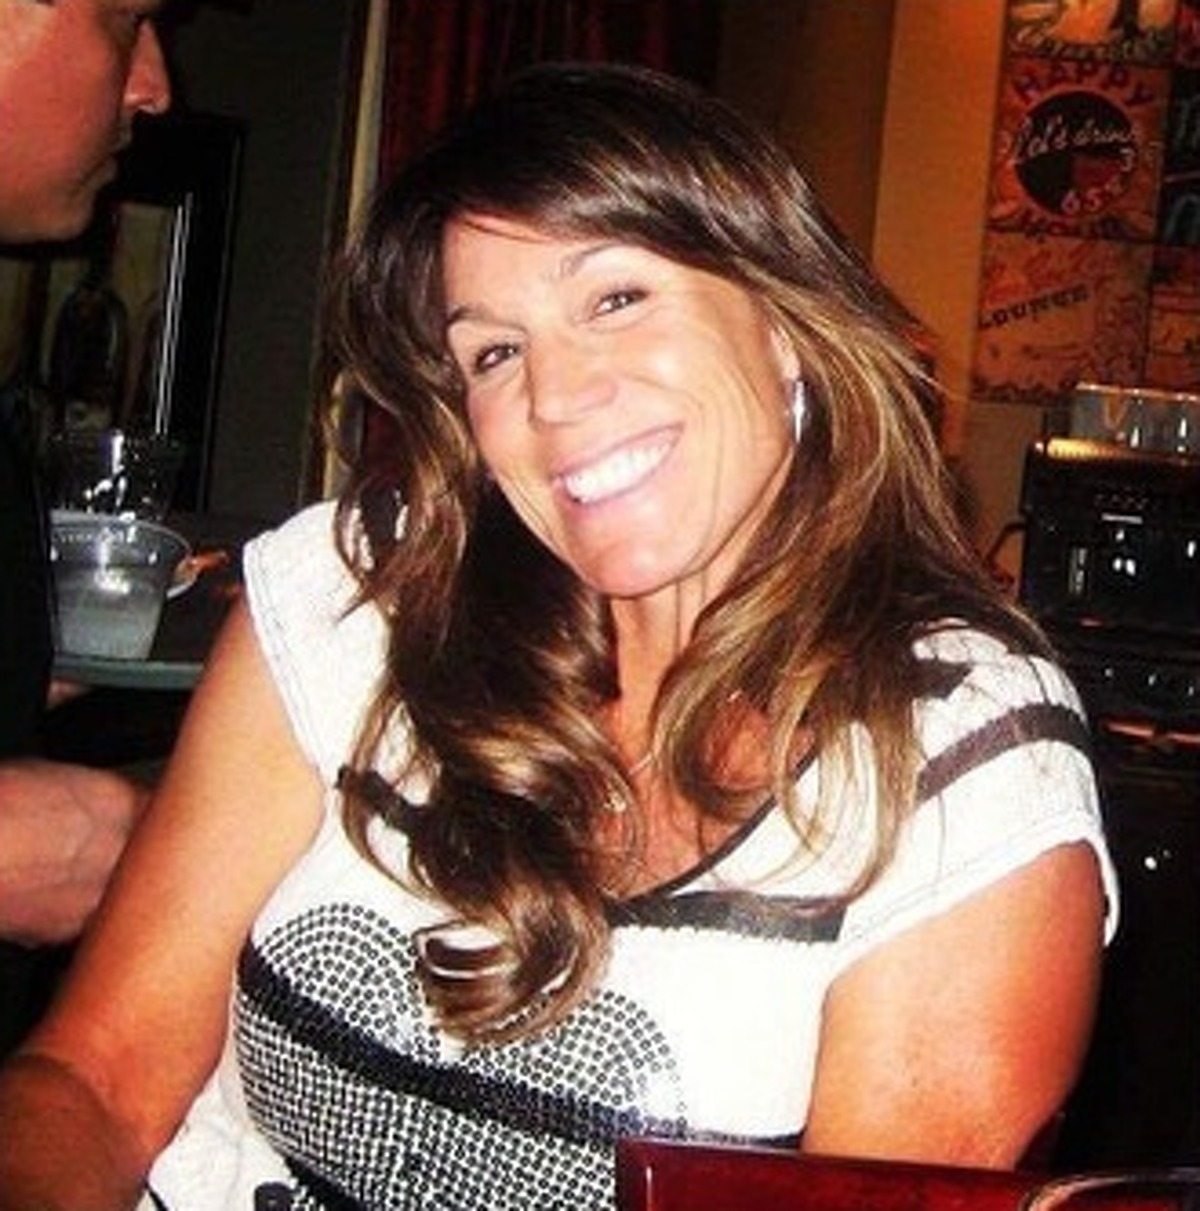 Stacee Etcheber, the wife of a San Francisco police officer, is missing after the Las Vegas massacre that killed 59 and injured more than 500 others. Oct. 1, 2017 Courtesy of Al Etcheber.